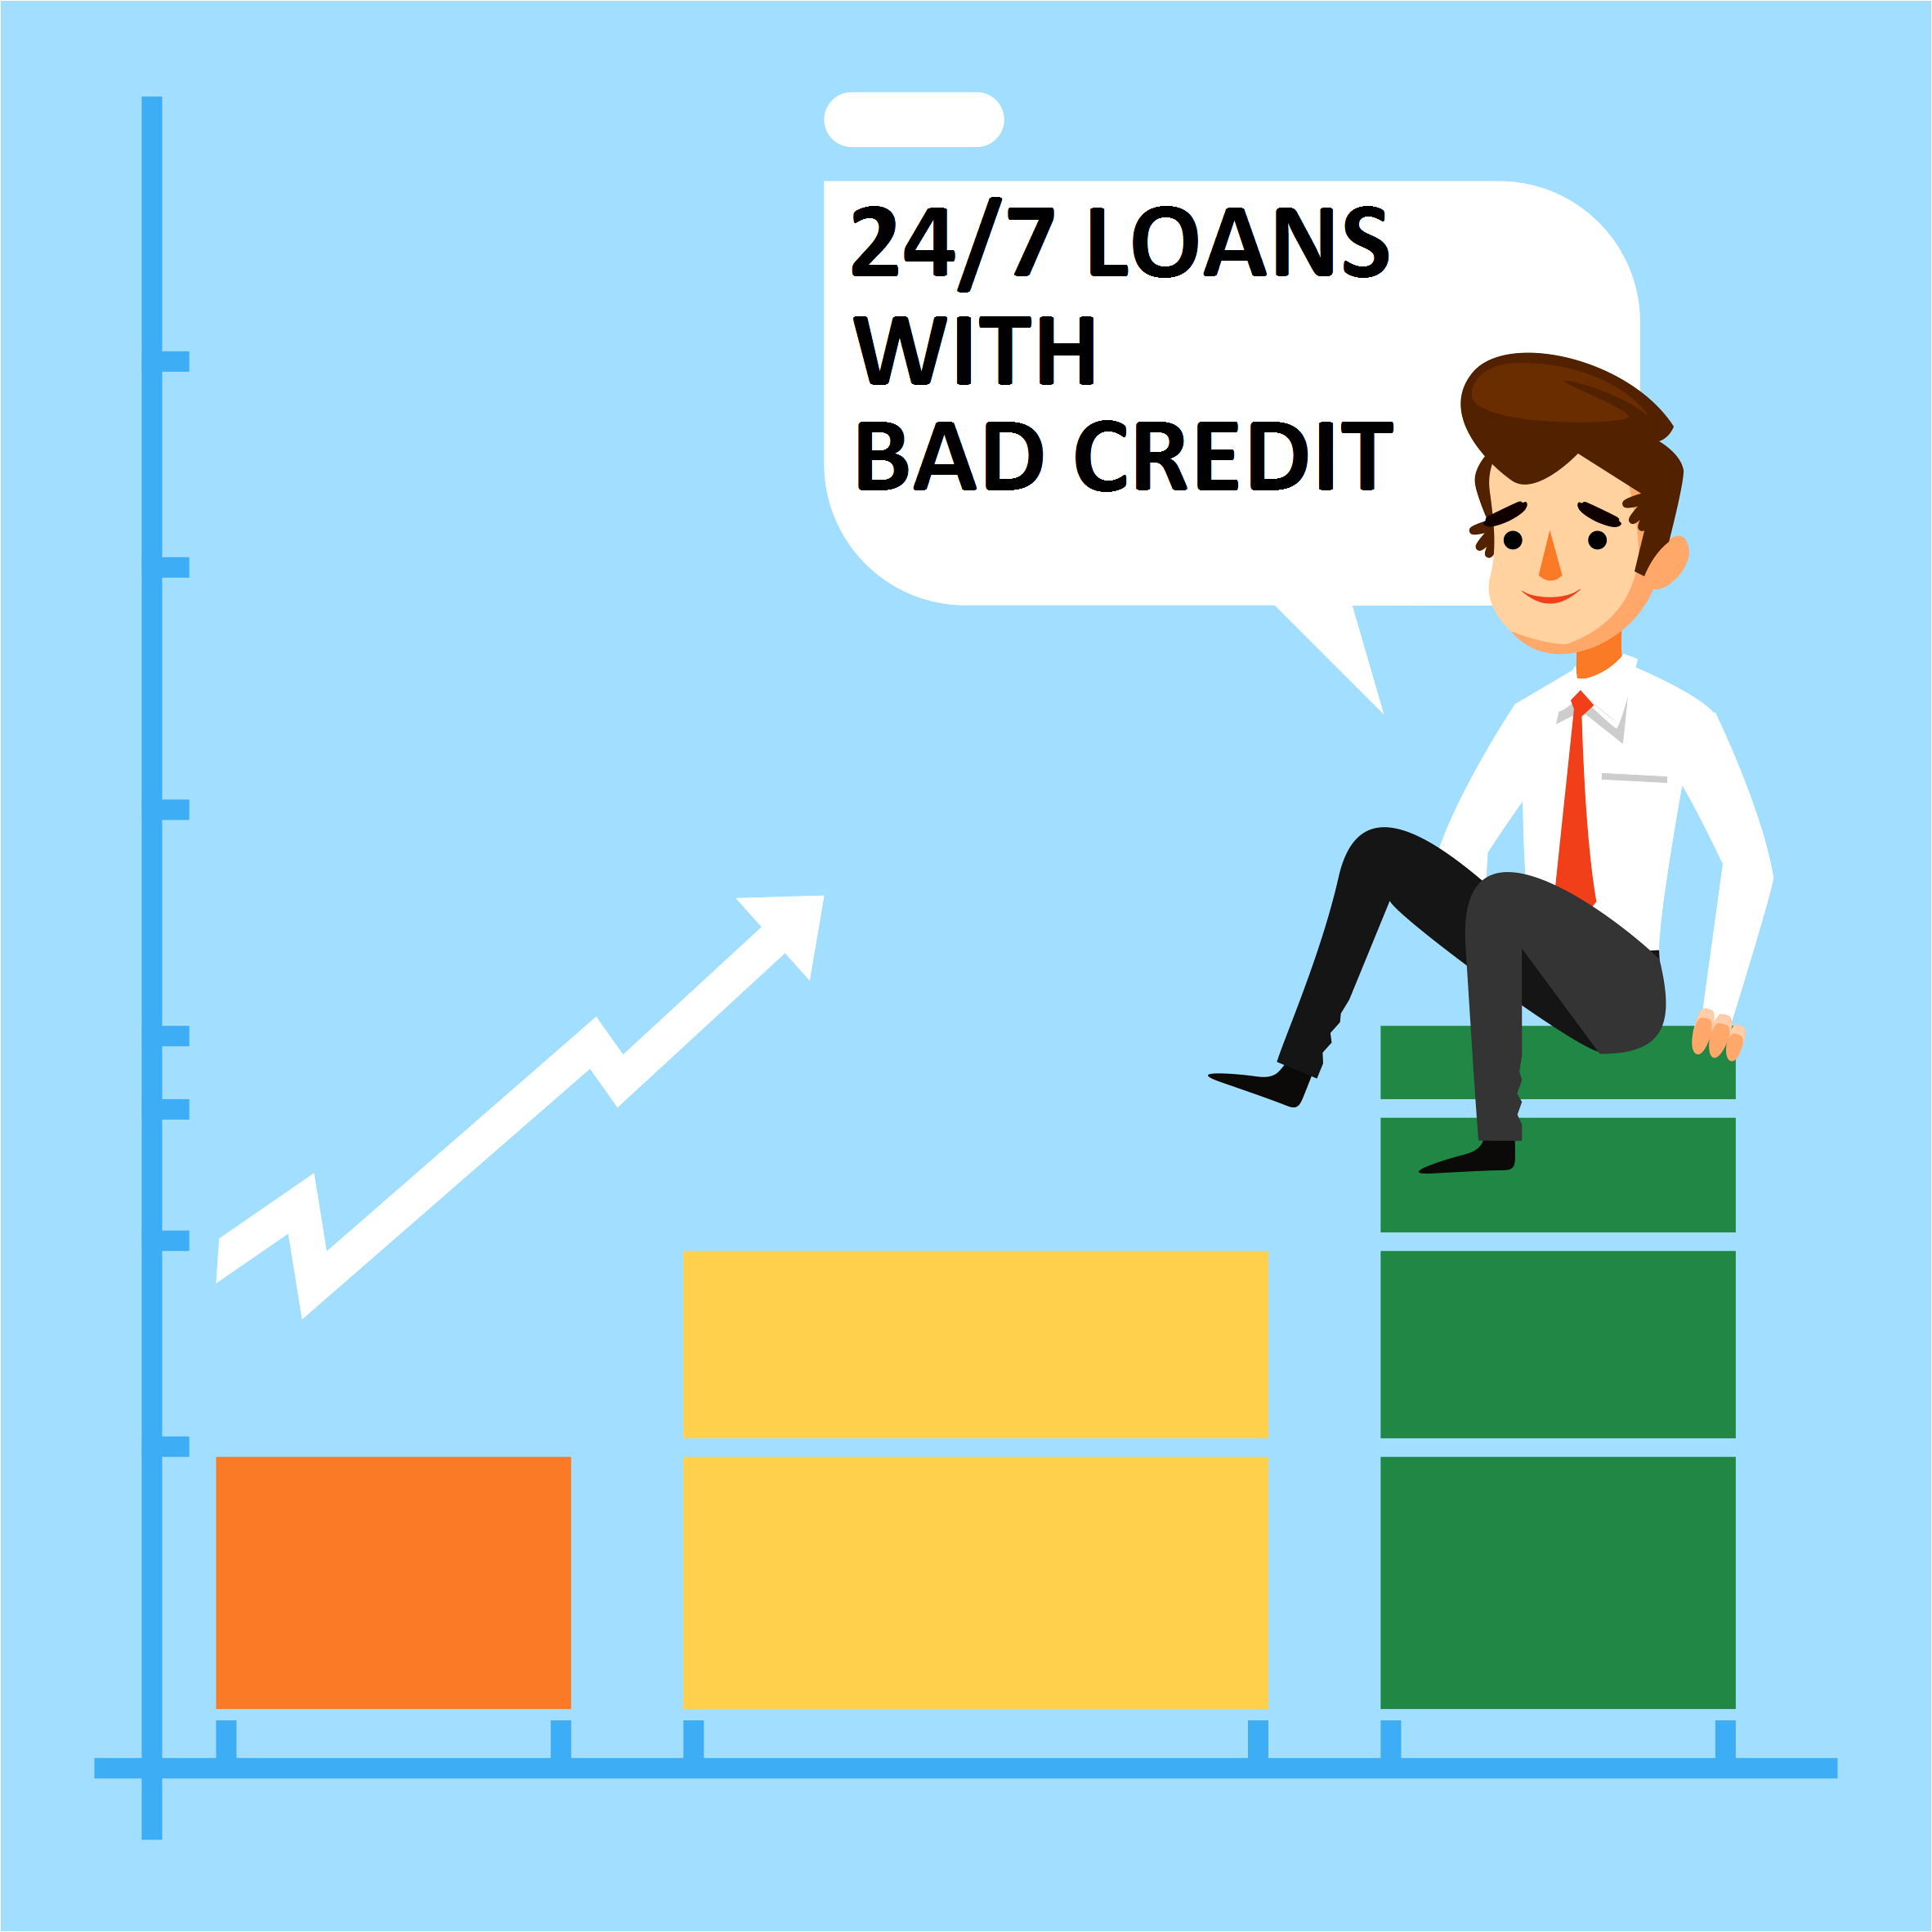 24/7 Loans With Bad Credit